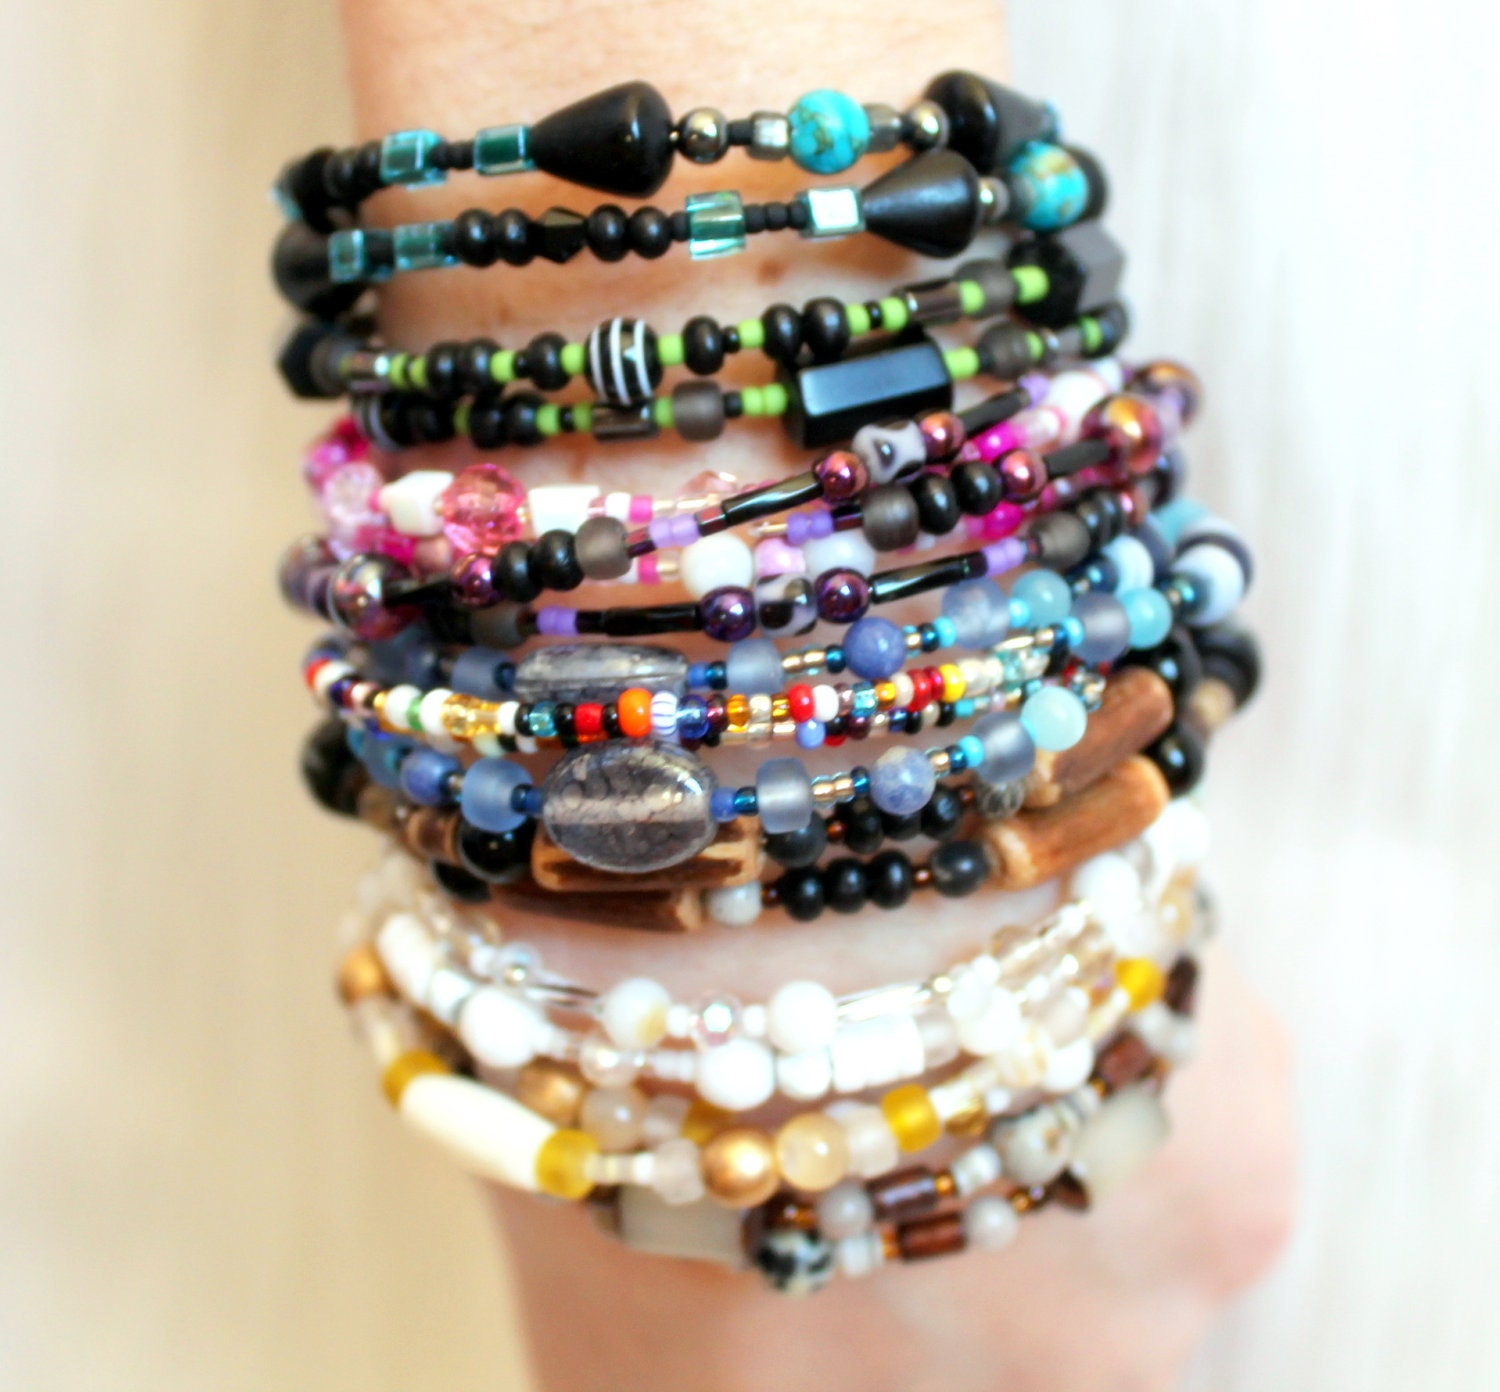 My Beaded Bracelets - Home